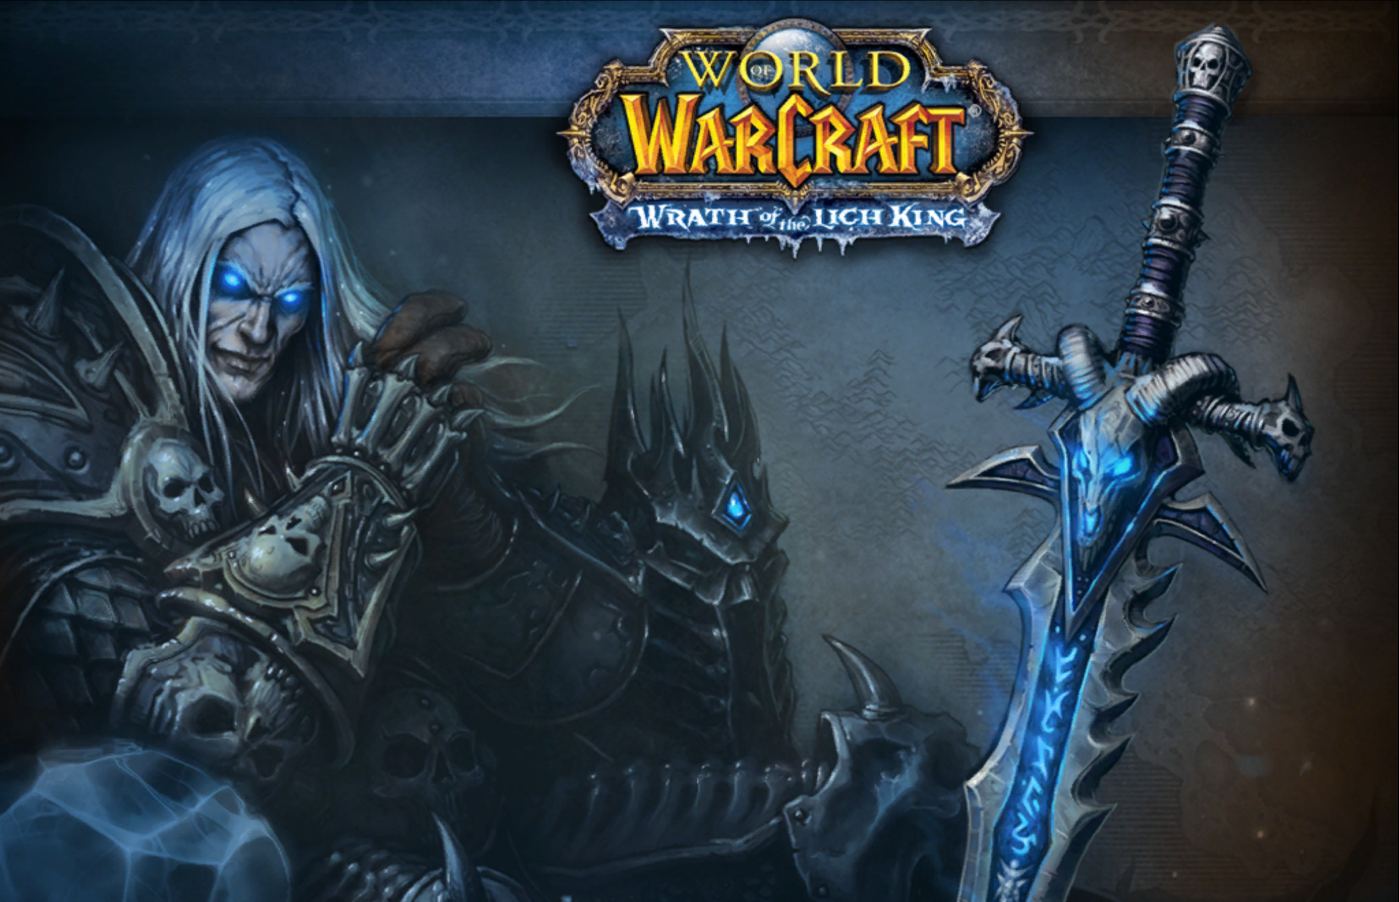 wow-lich-king-world-of-warcraft-wrath-of-the-lich-king-33160198-1399-902.png